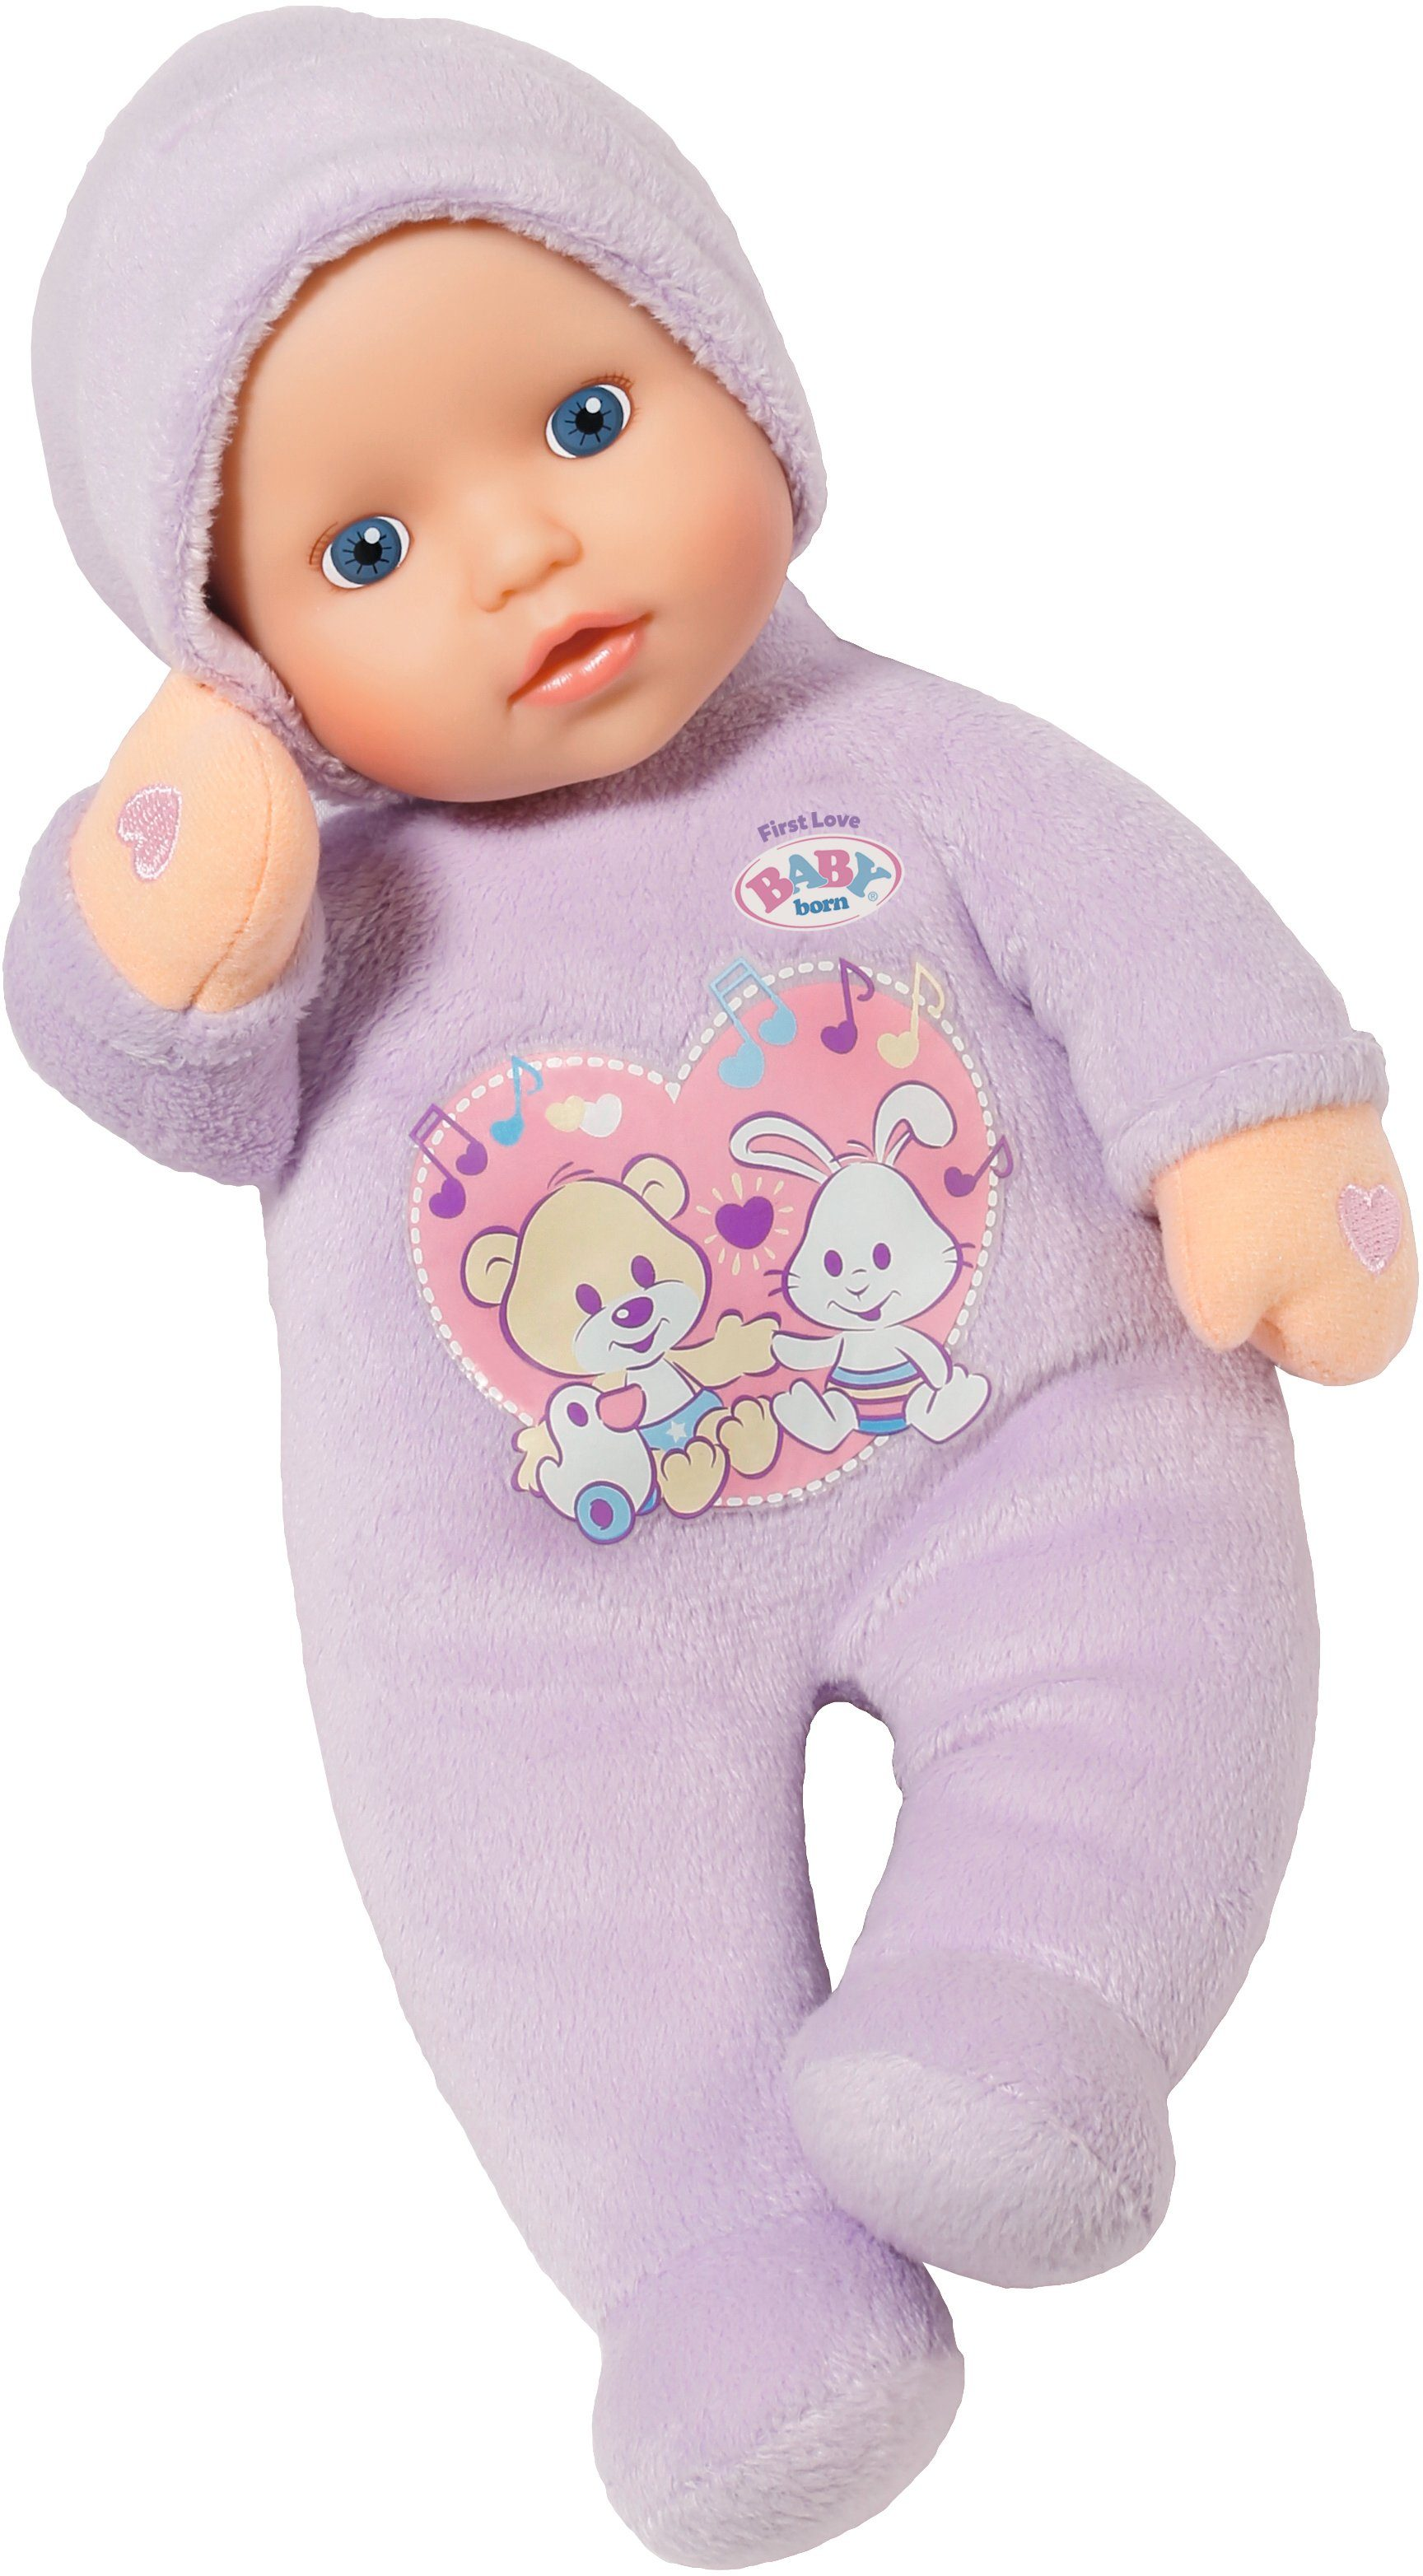 Zapf Creation Puppe mit Schlaflied Funktion, »BABY born® First Love Hold My Hands«